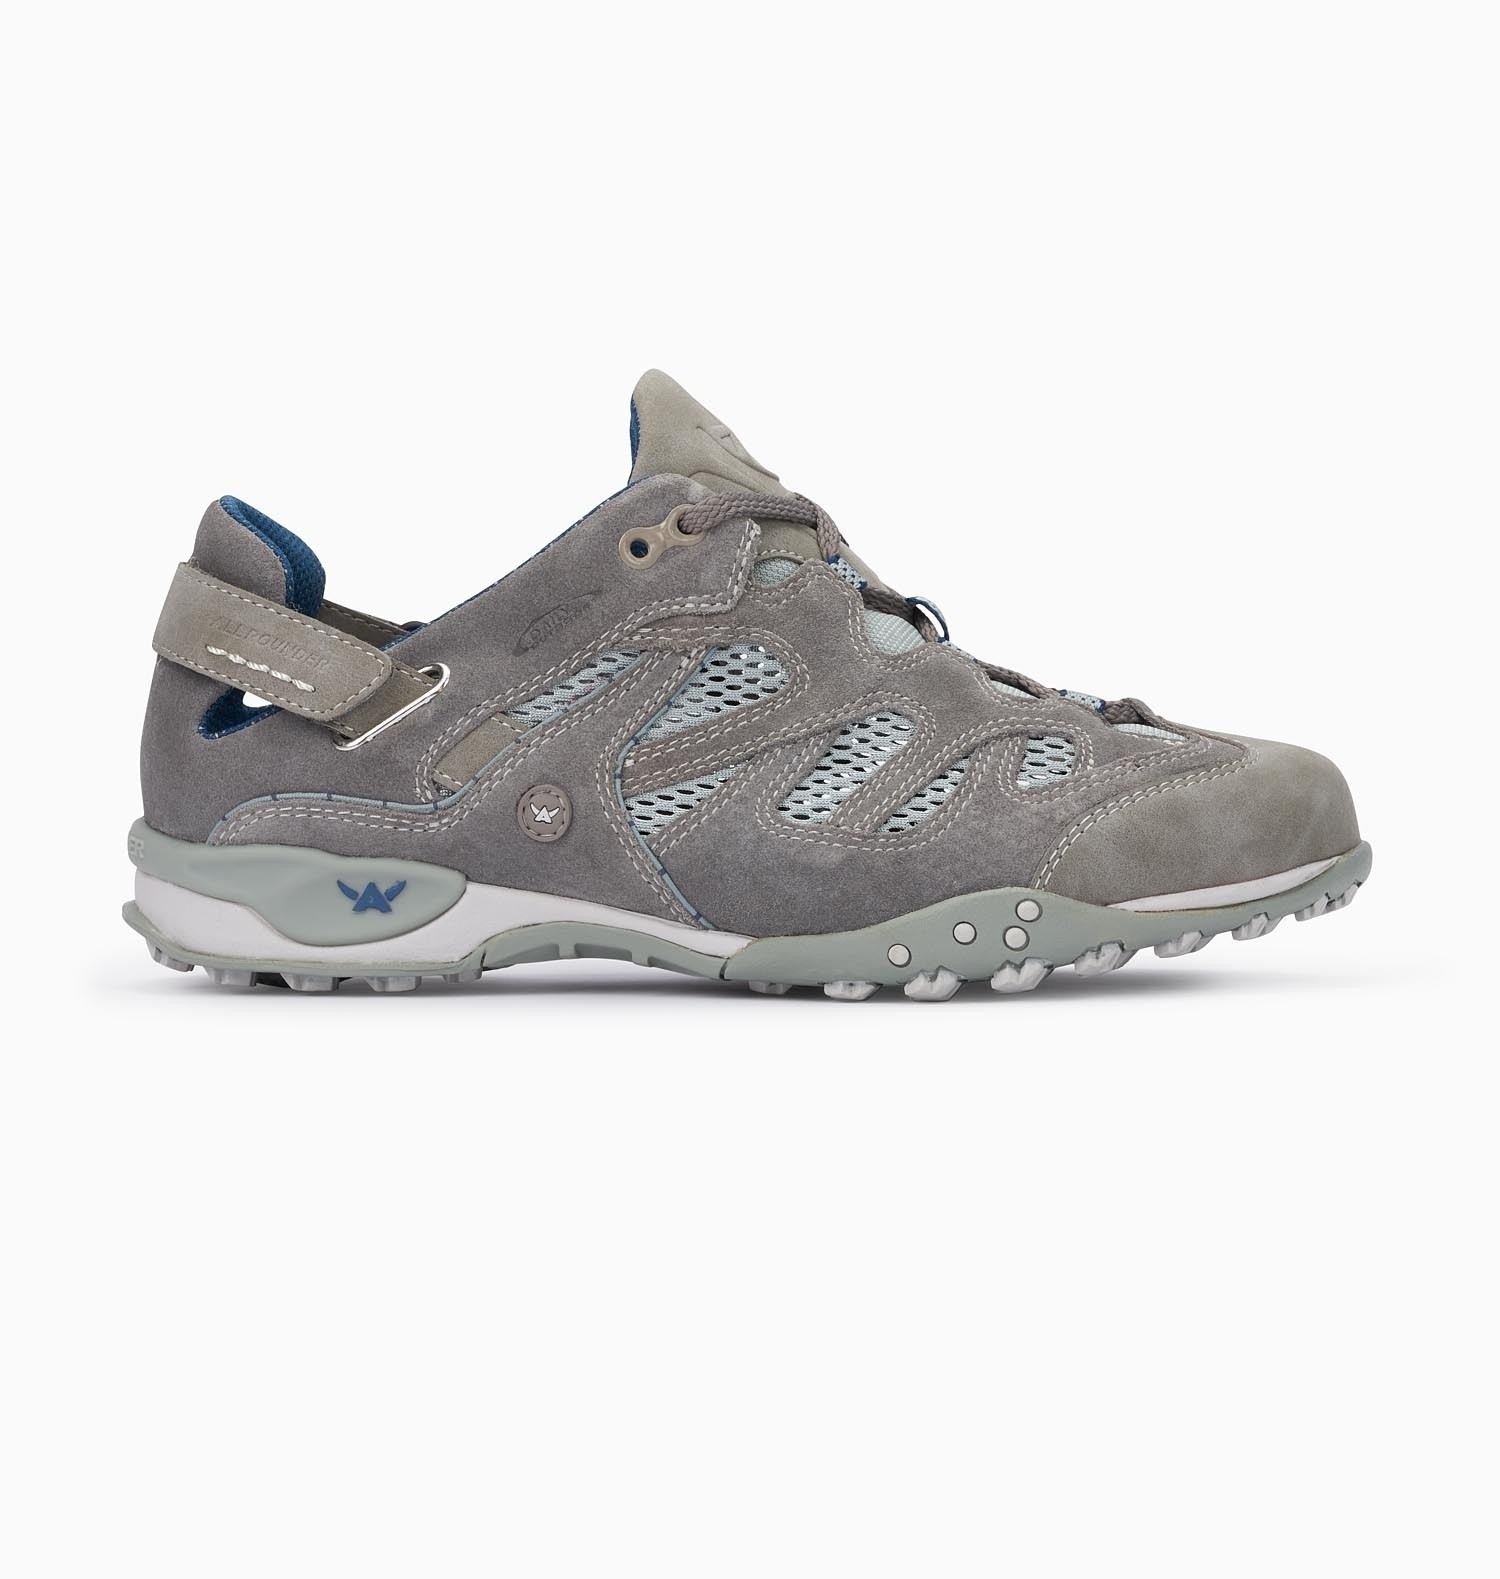 outdoor homme modèle Turbo gris clair - Mephisto